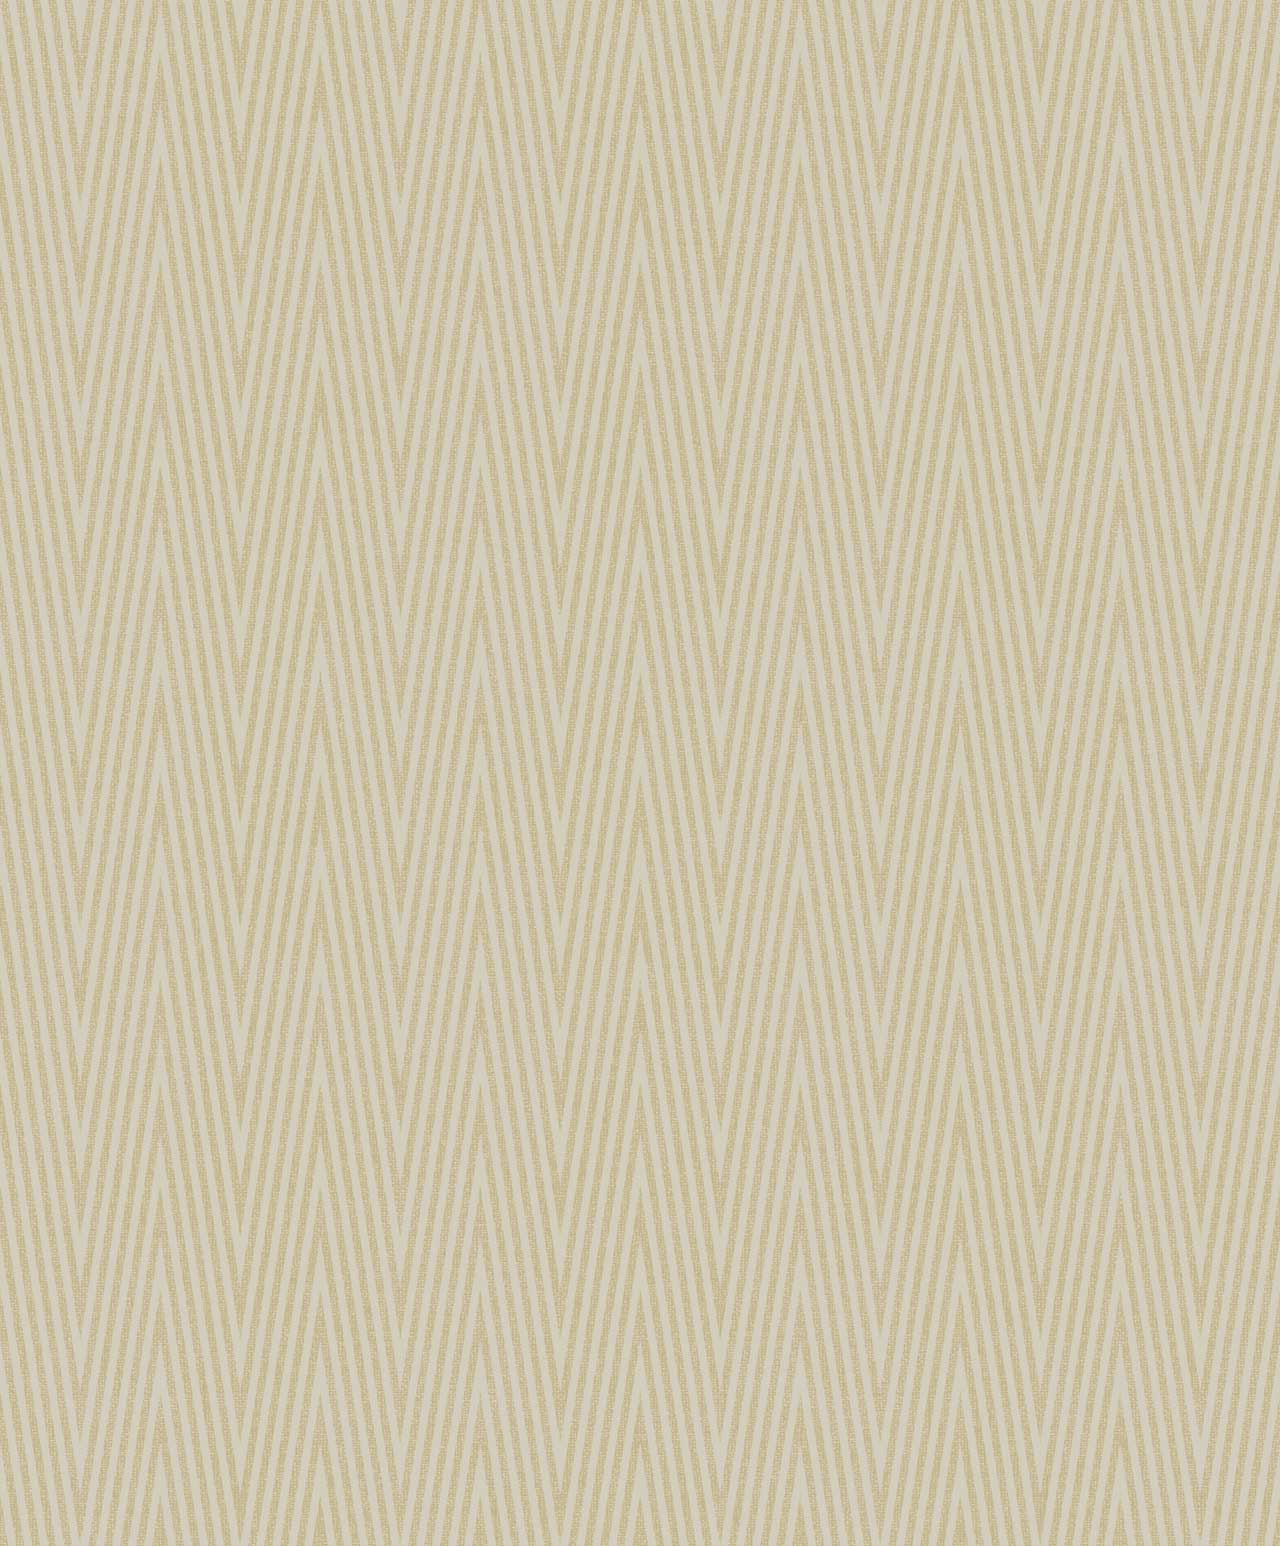 Sloan-Luxury-Wallpaper-SL00836-CHEVRON